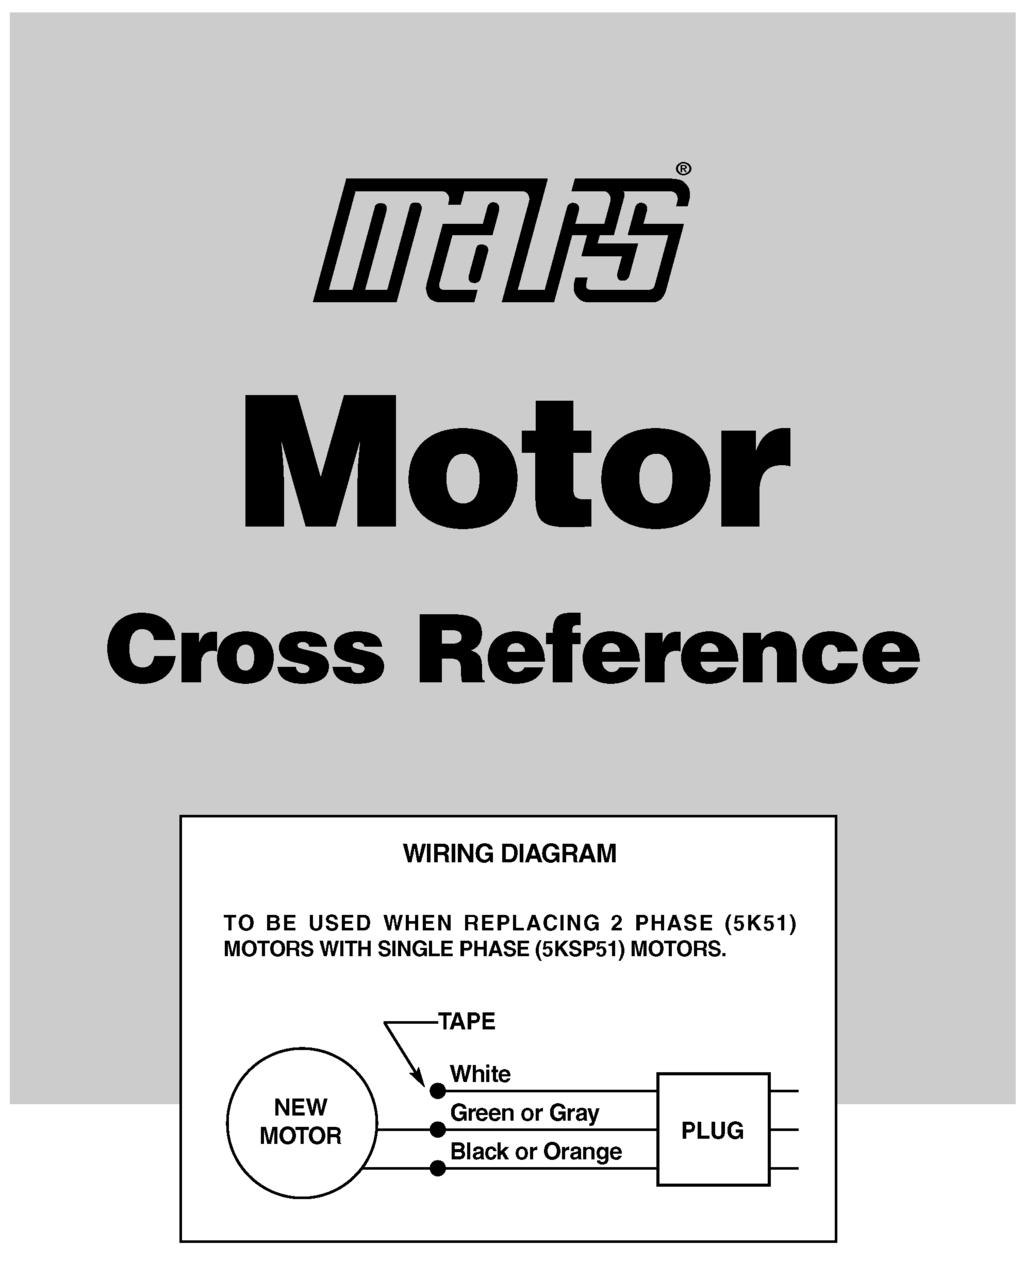 Mars Motor Cross Reference Information Pdf 2000 Vw Passat 1 8 Vacuum Hose Diagram Light Switch Wiring